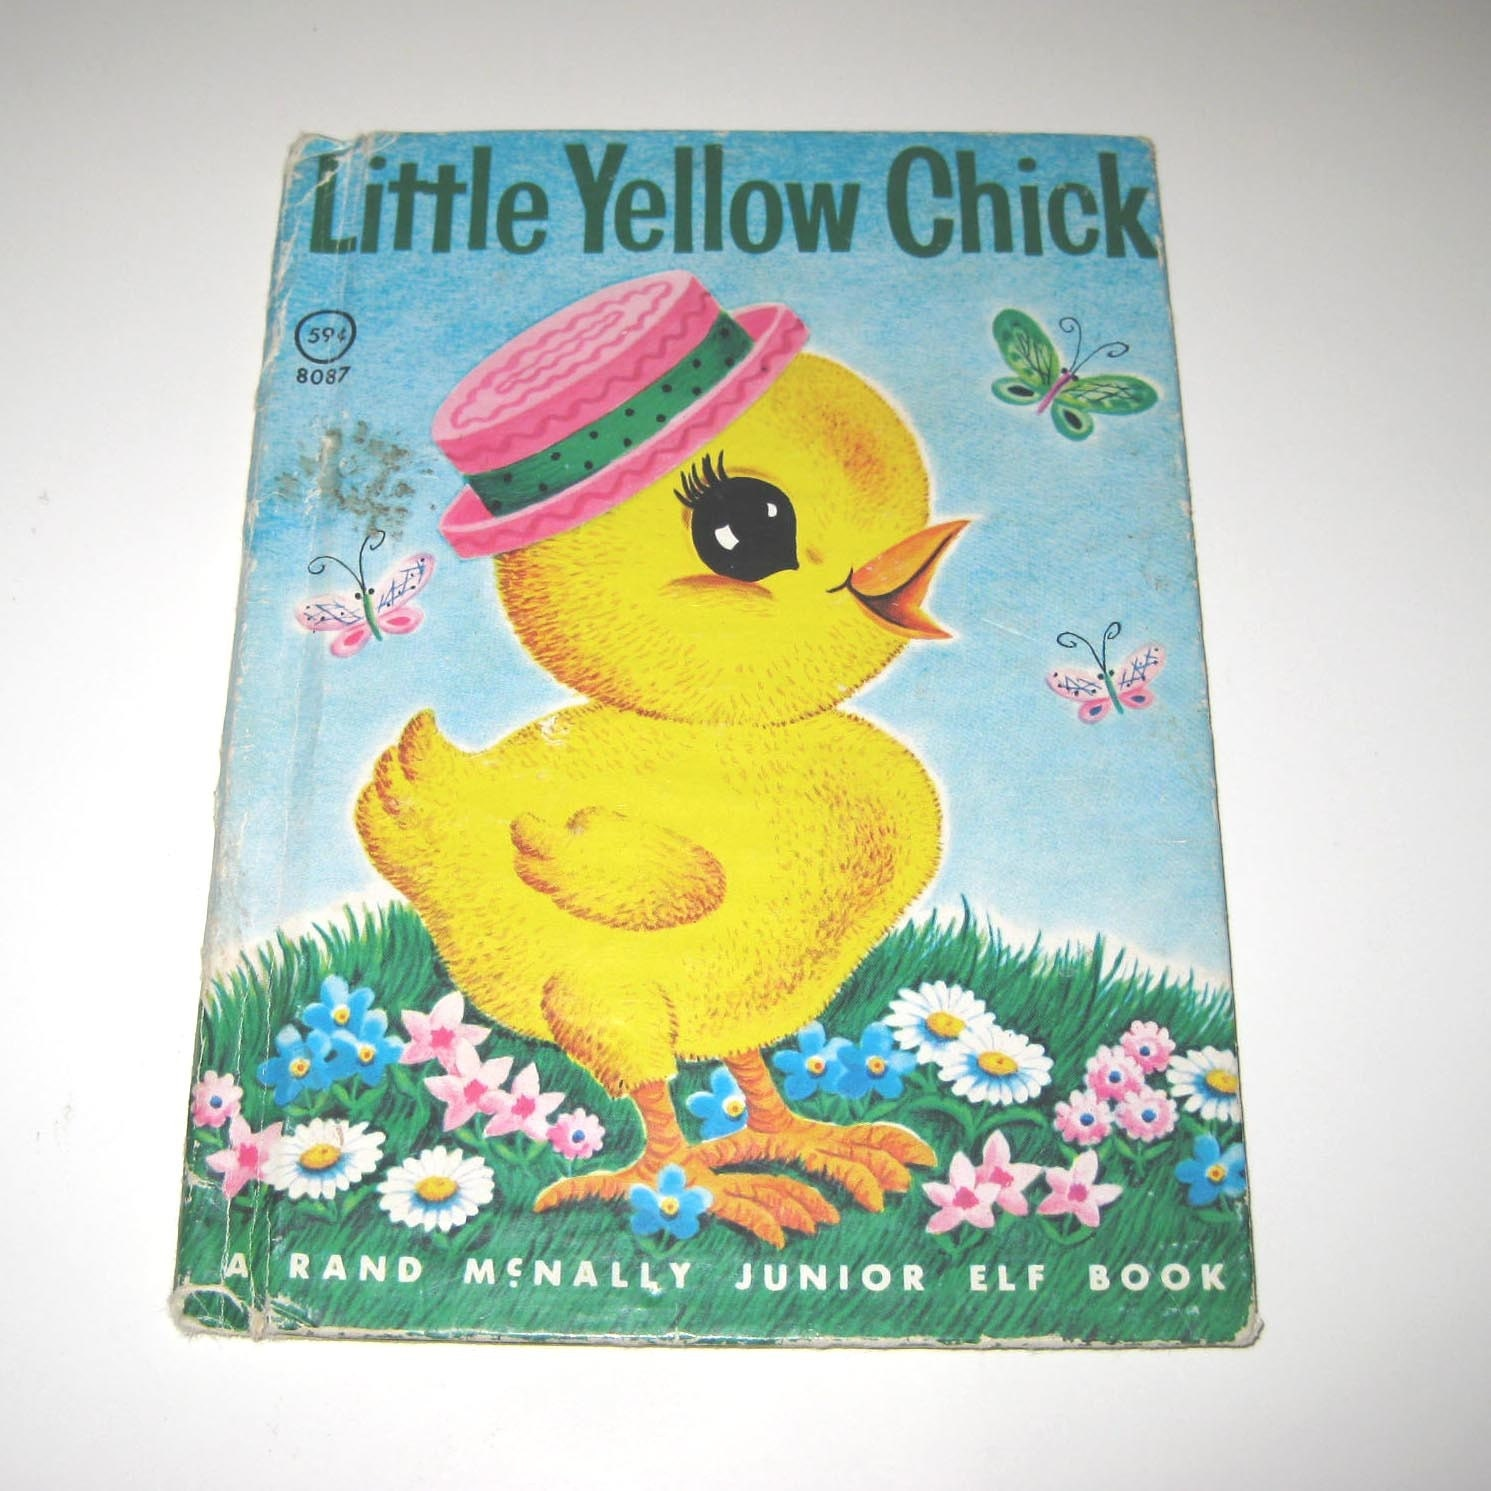 Vintage 1960s Childrens Book Entitled Little Yellow Chick by